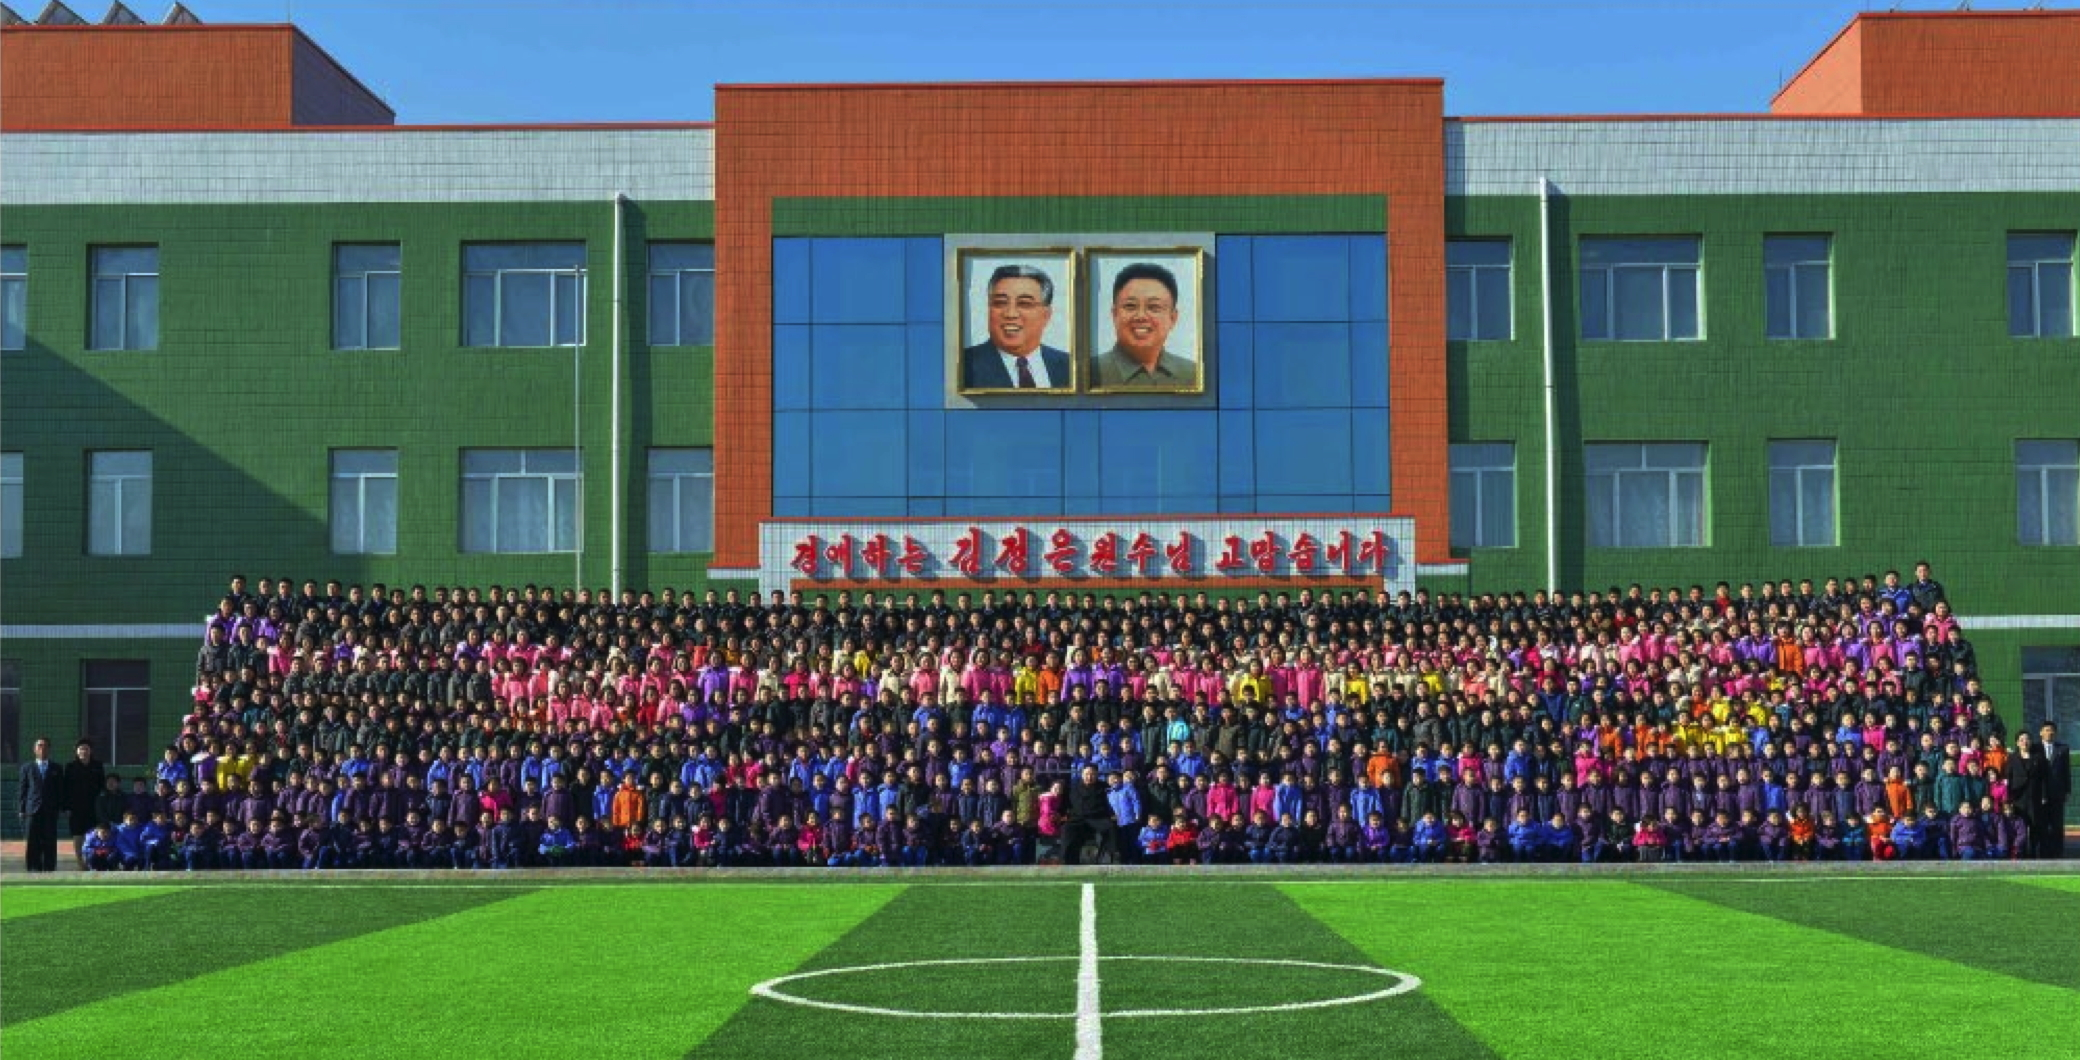 Commemorative photograph of Kim Jong Un with students and teachers of the Pyongyang Orphans' School which appeared bottom-center on the front page of the February 2, 2017 edition of WPK daily organ Rodong Sinmun (Photo: Rodong Sinmun/KCNA/Korean Press Media).